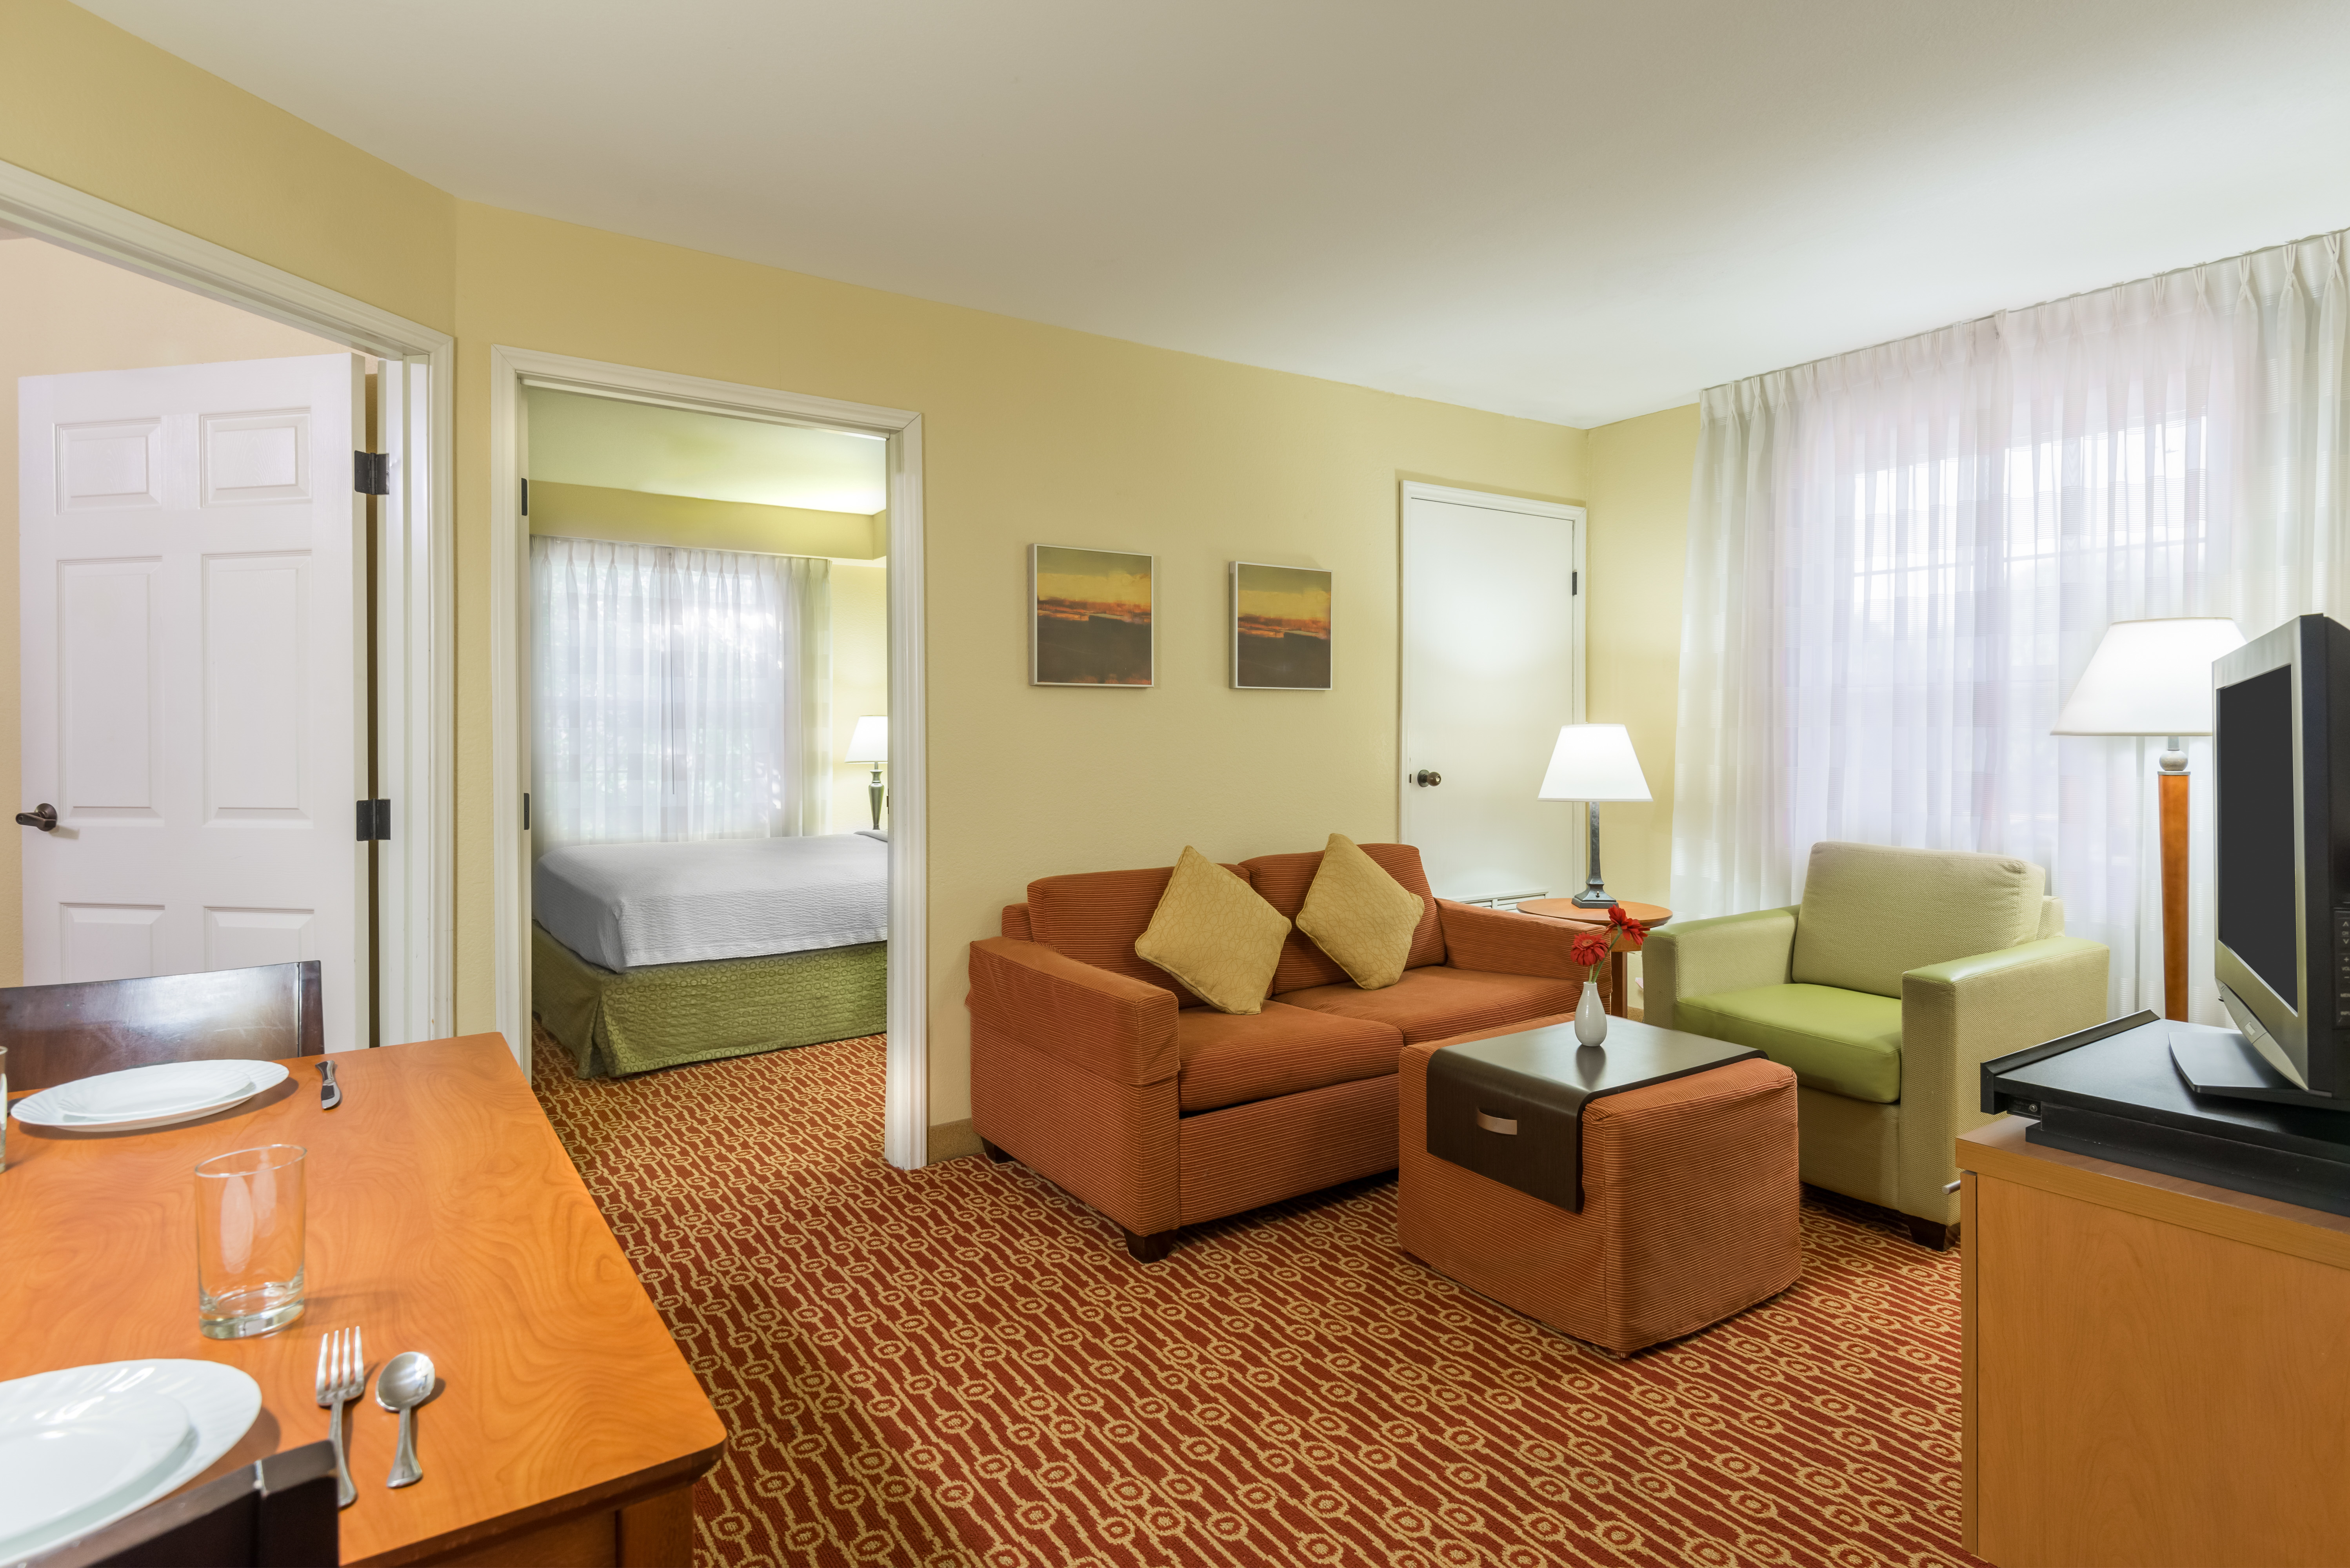 TownePlace Suites by Marriott Springfield image 5